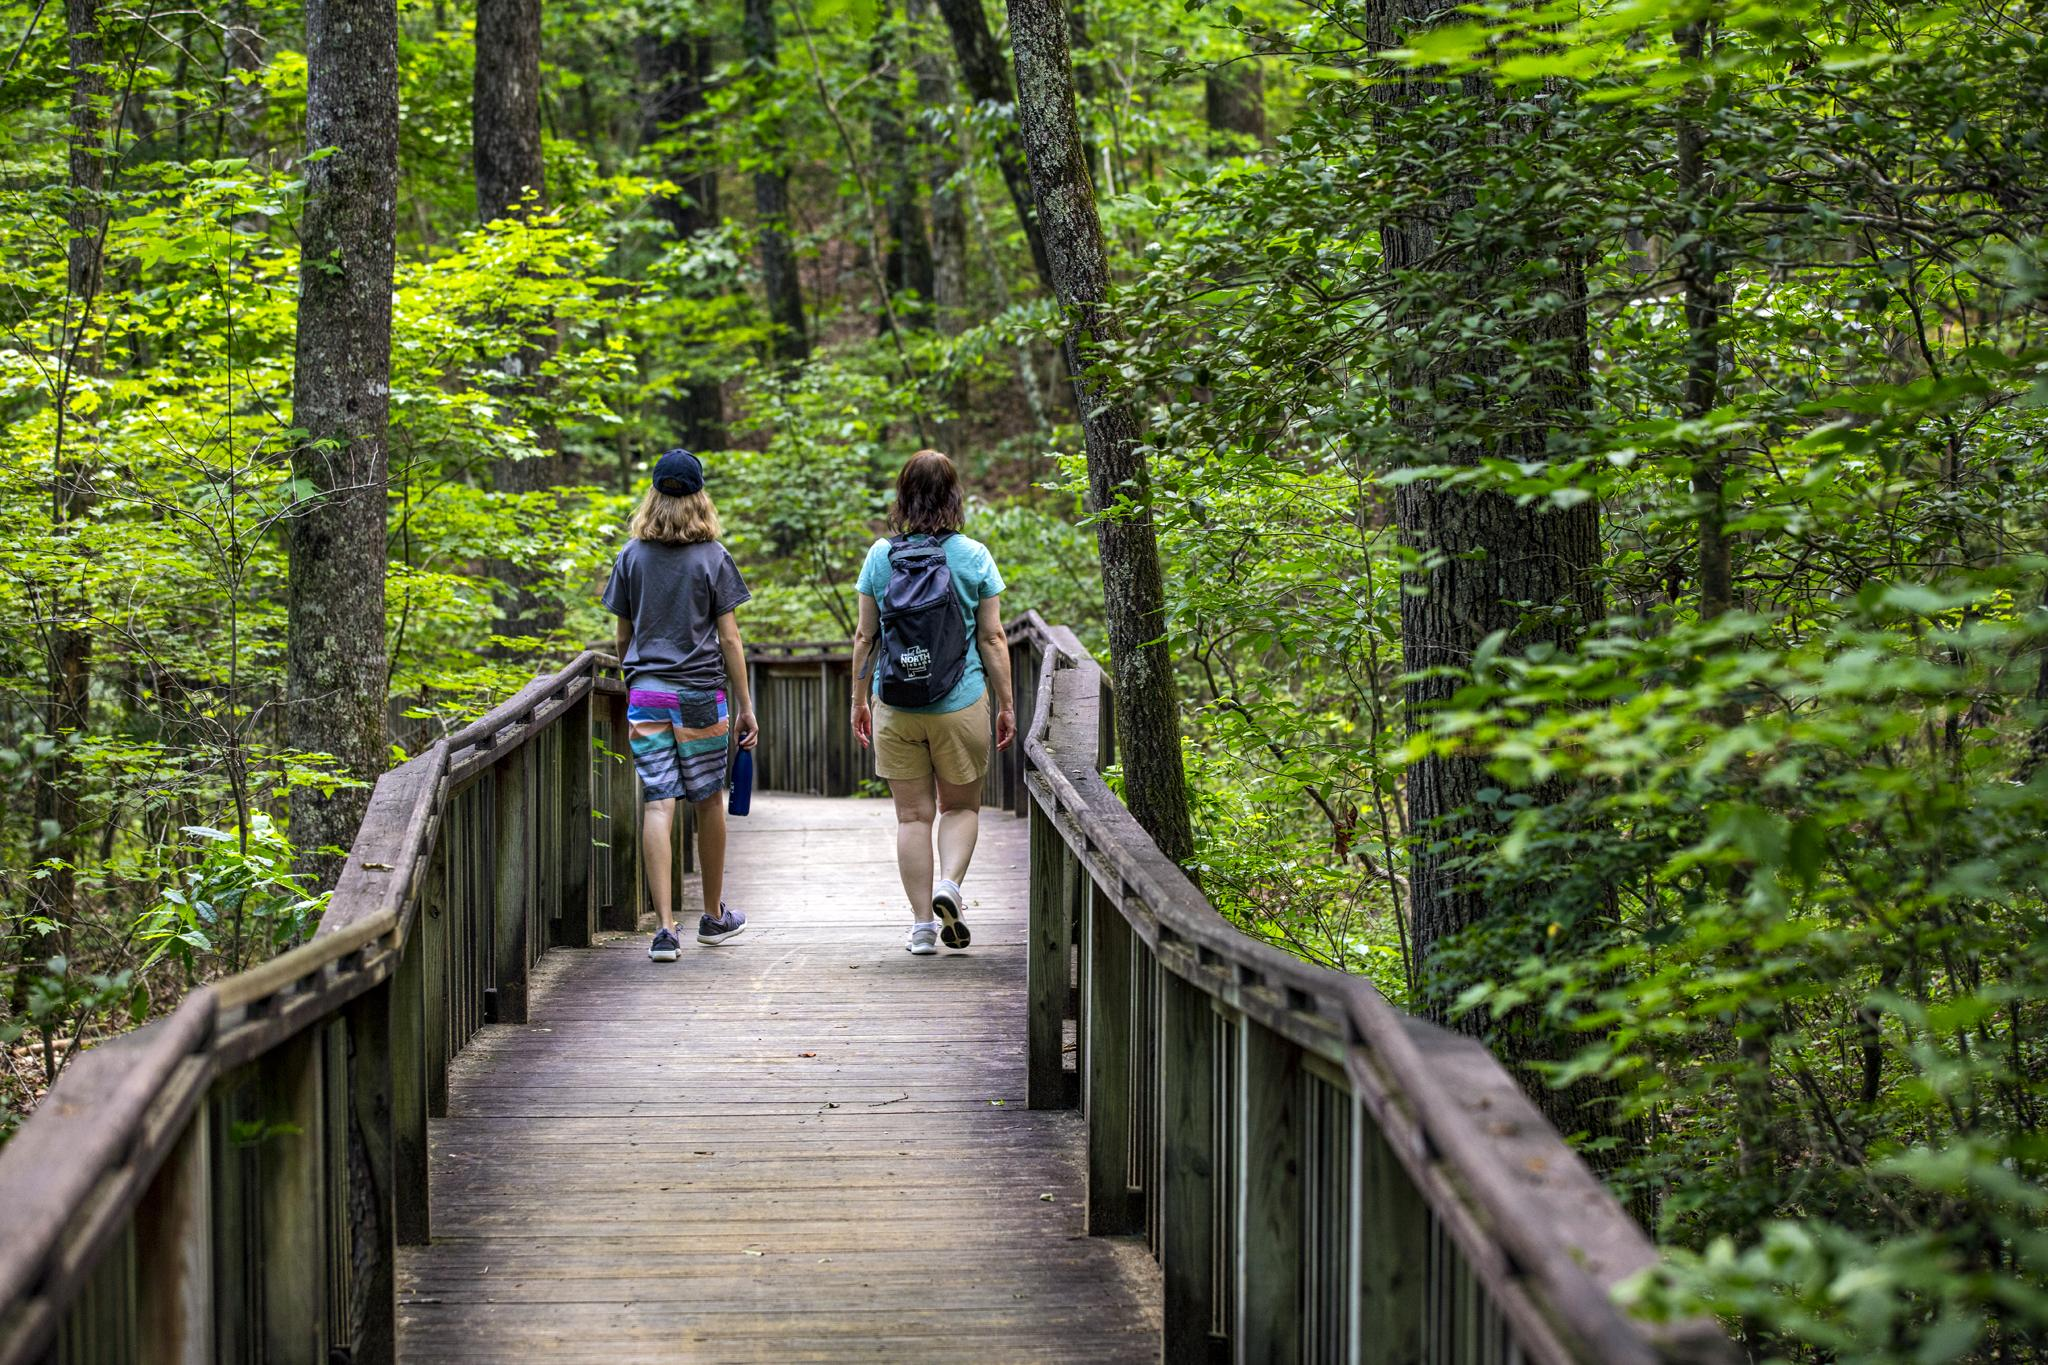 Desoto State Park has a wide range of activities including hiking trails with ADA access. – Scott Baker